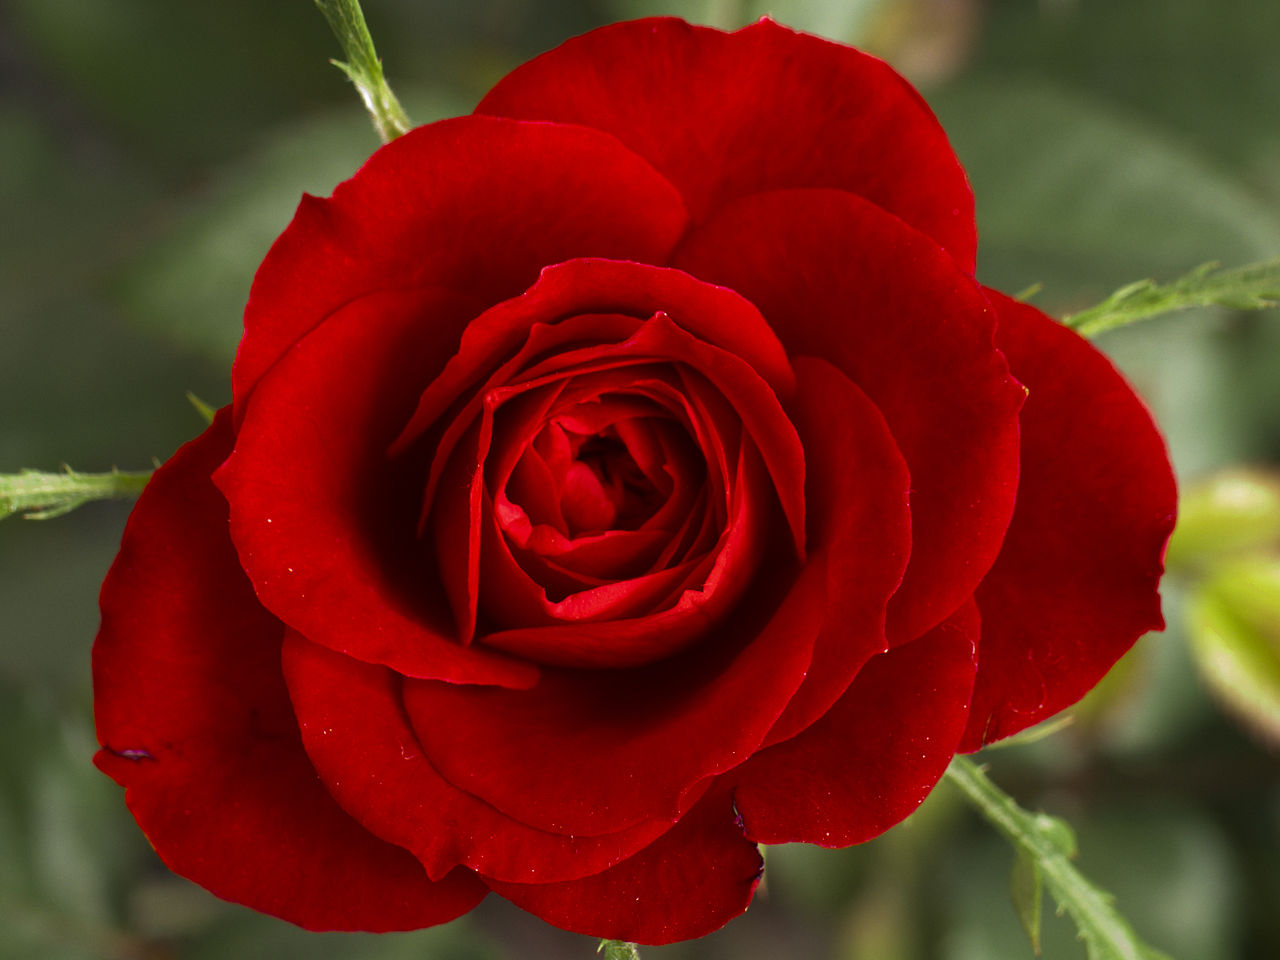 Filesmall Red Rosejpg Wikipedia